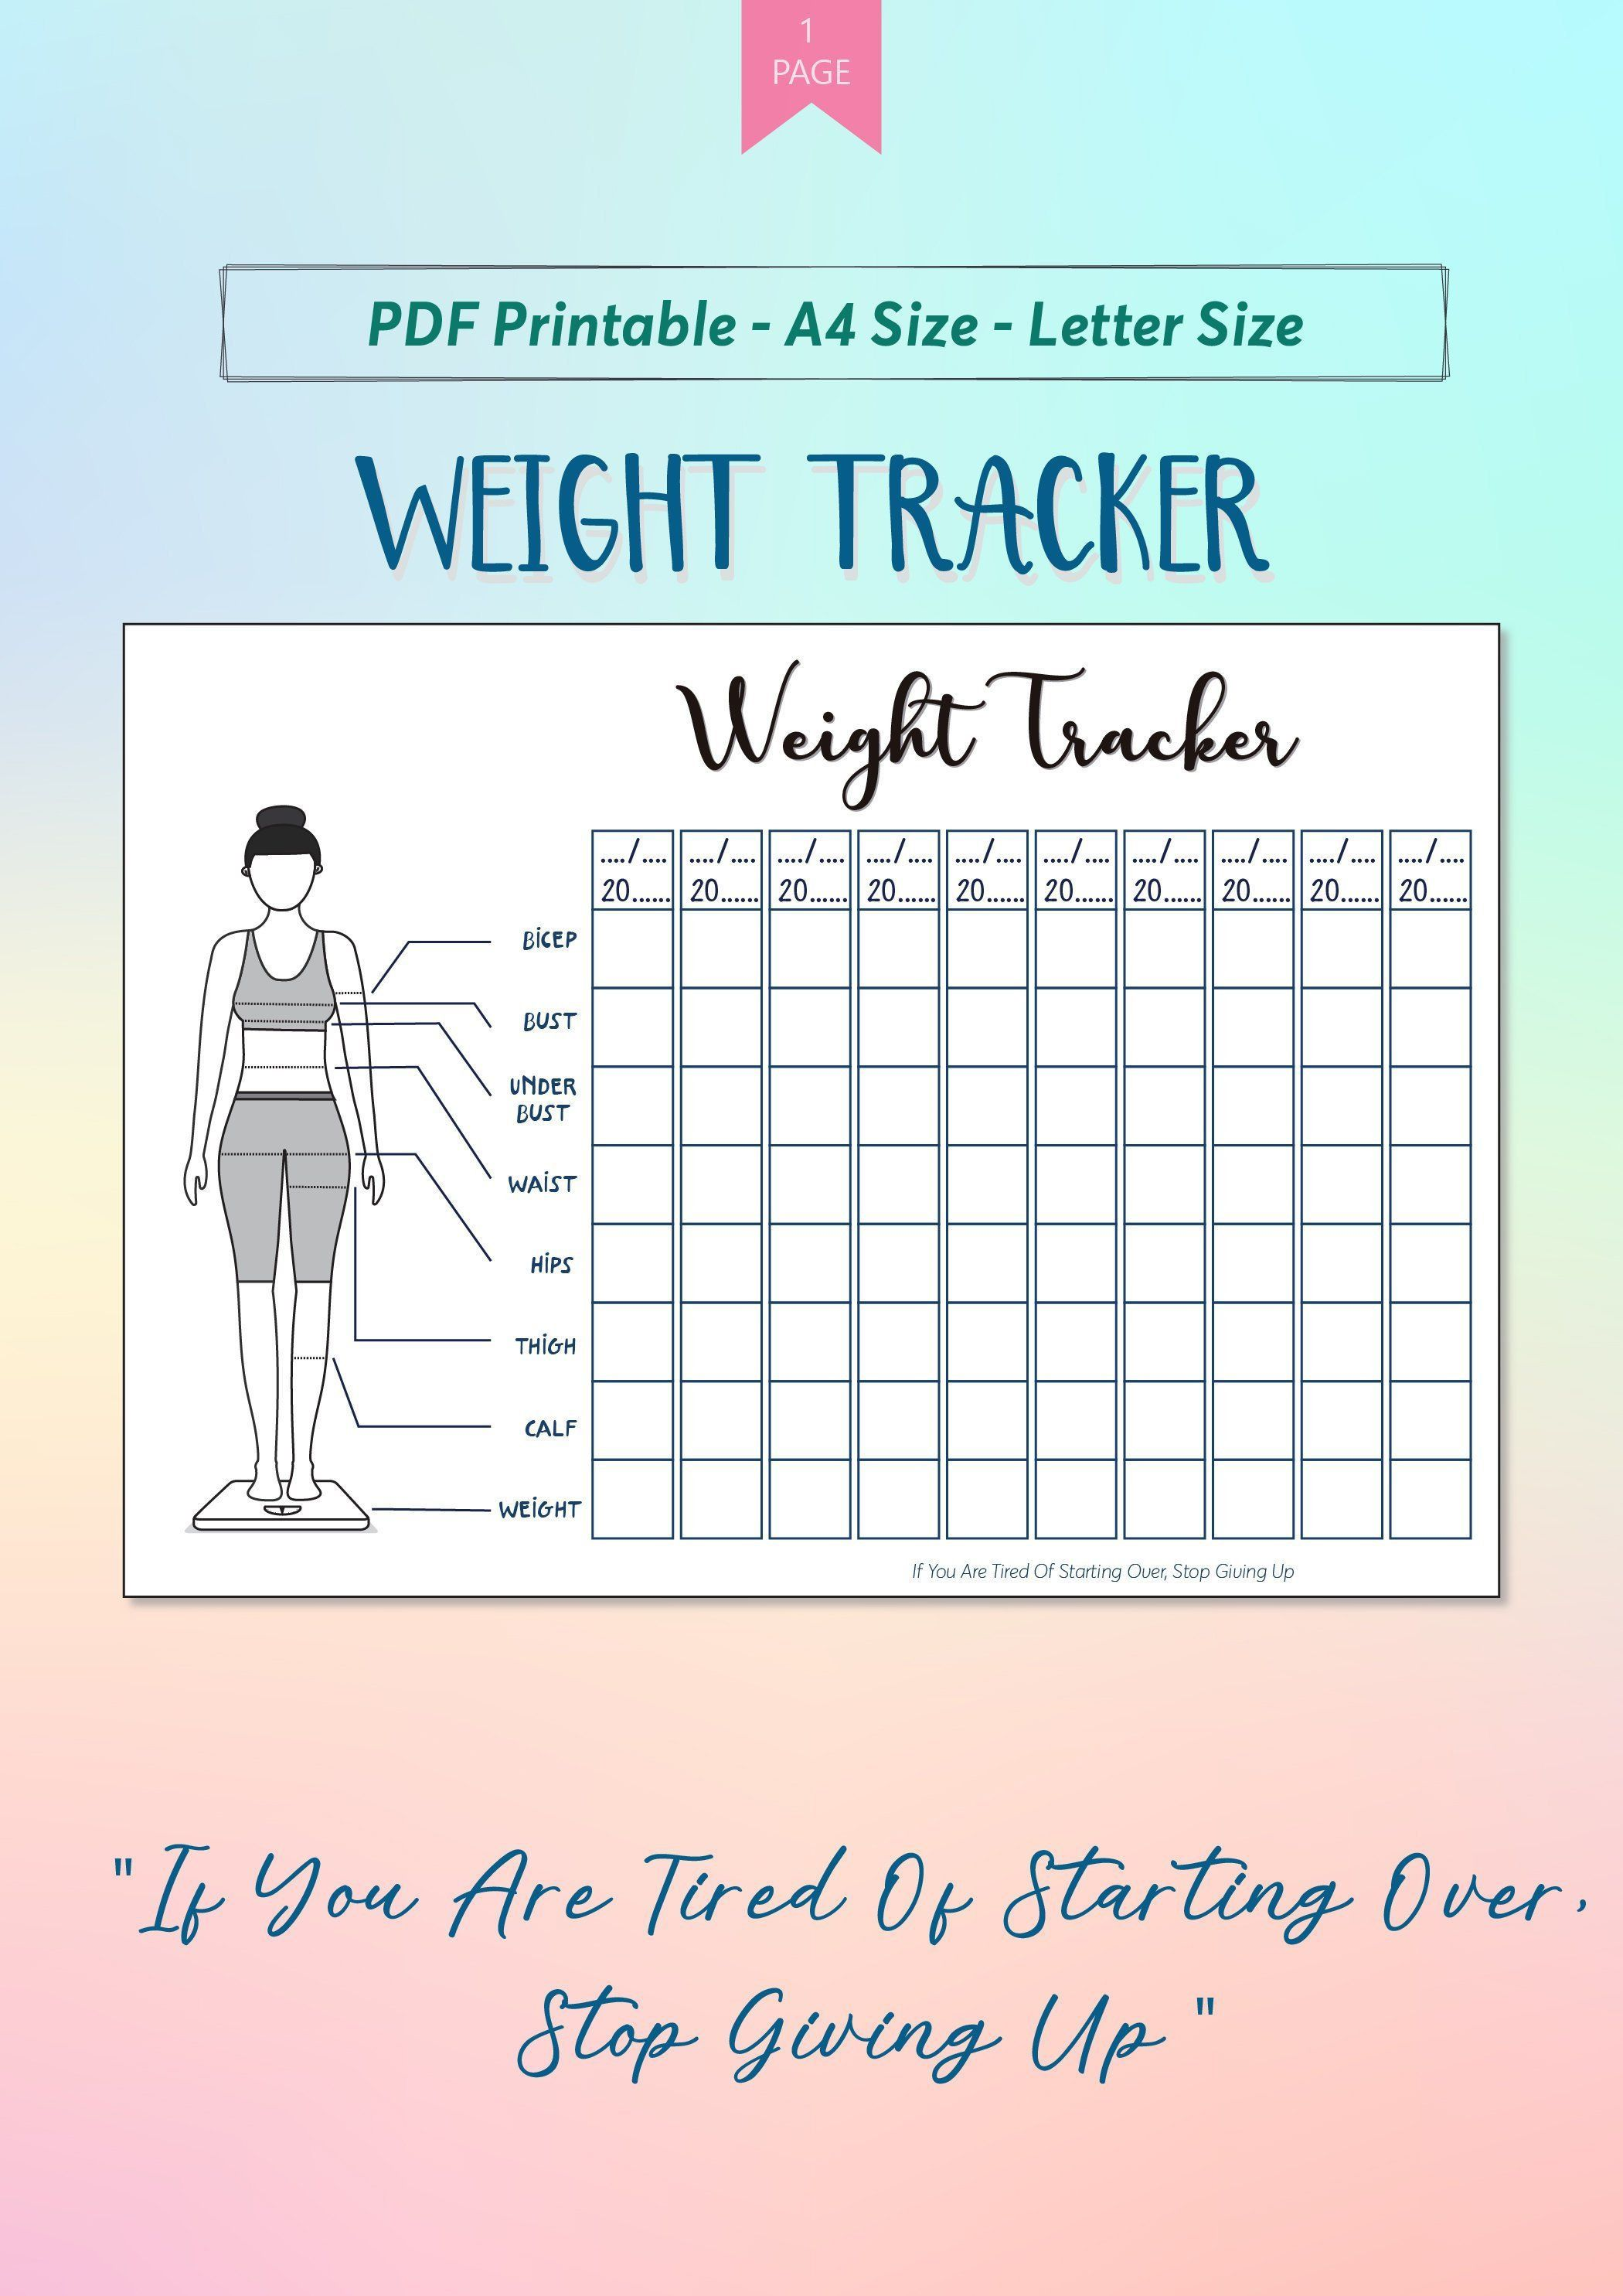 005 Fascinating Weight Los Tracker Template Sample  Weekly In Thi Body I Live Instagram 2019 2020Full